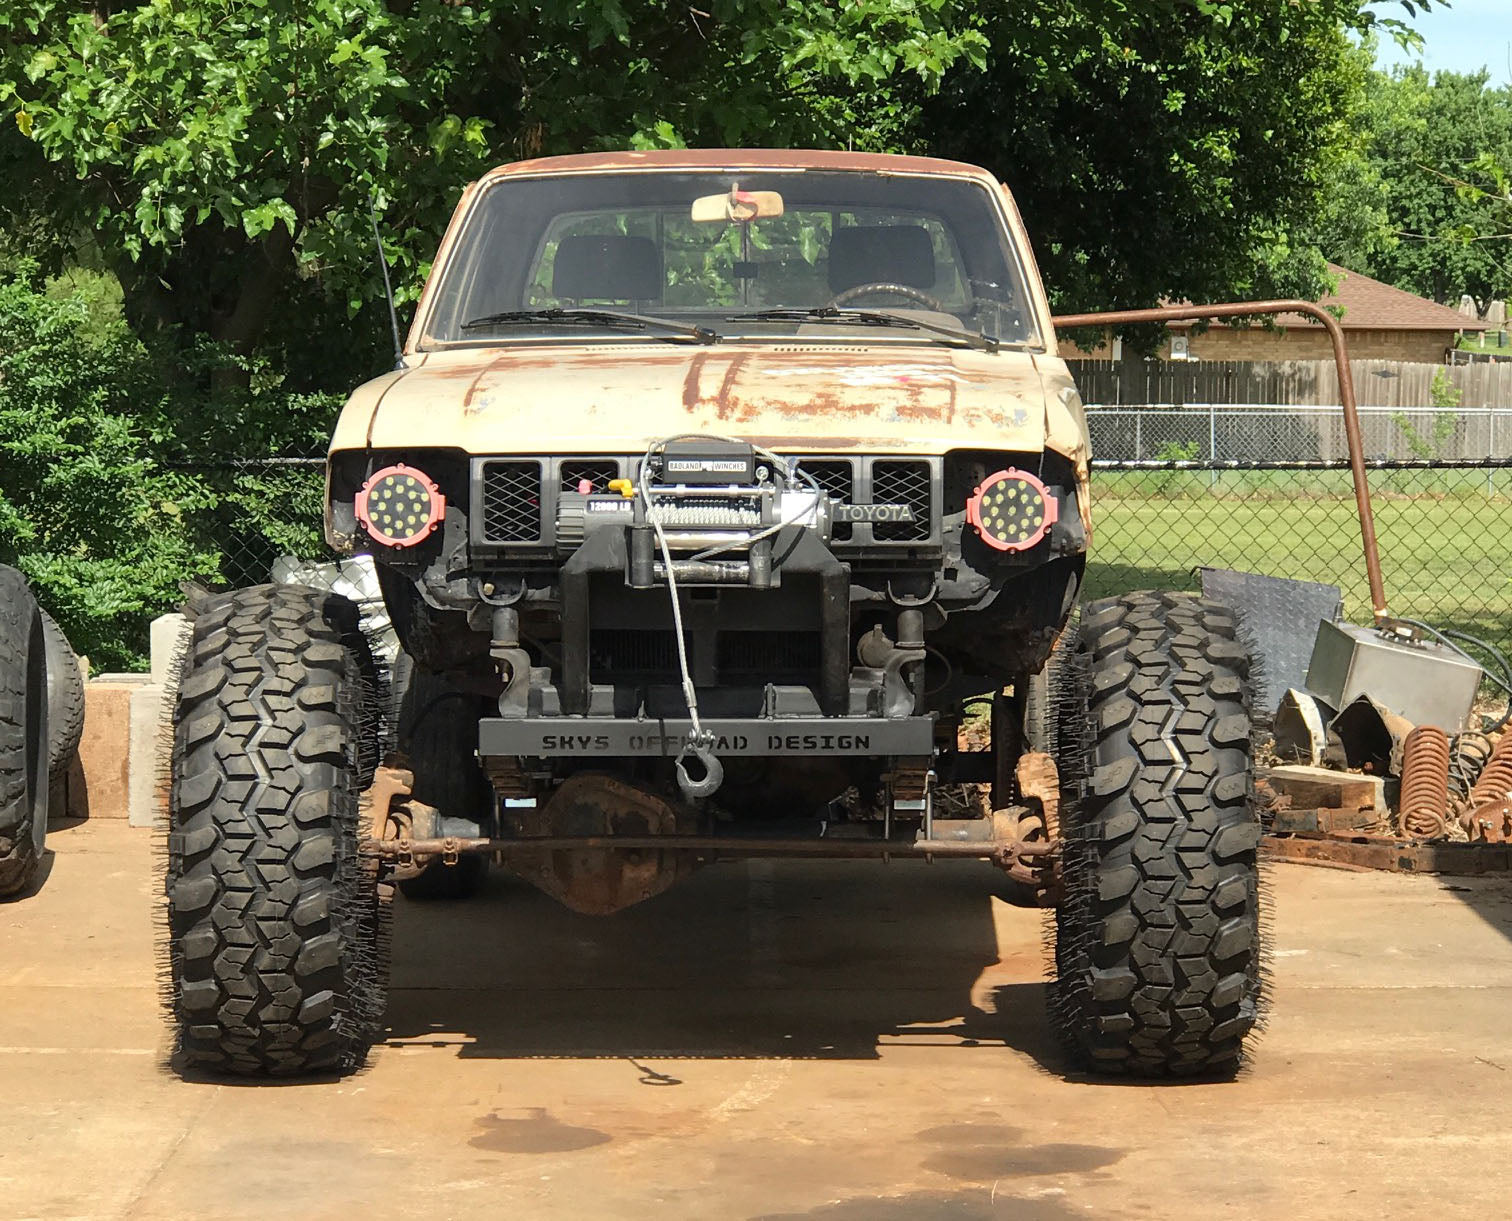 Toyota Full Width Solid Axle Swap – Sky Manufacturing